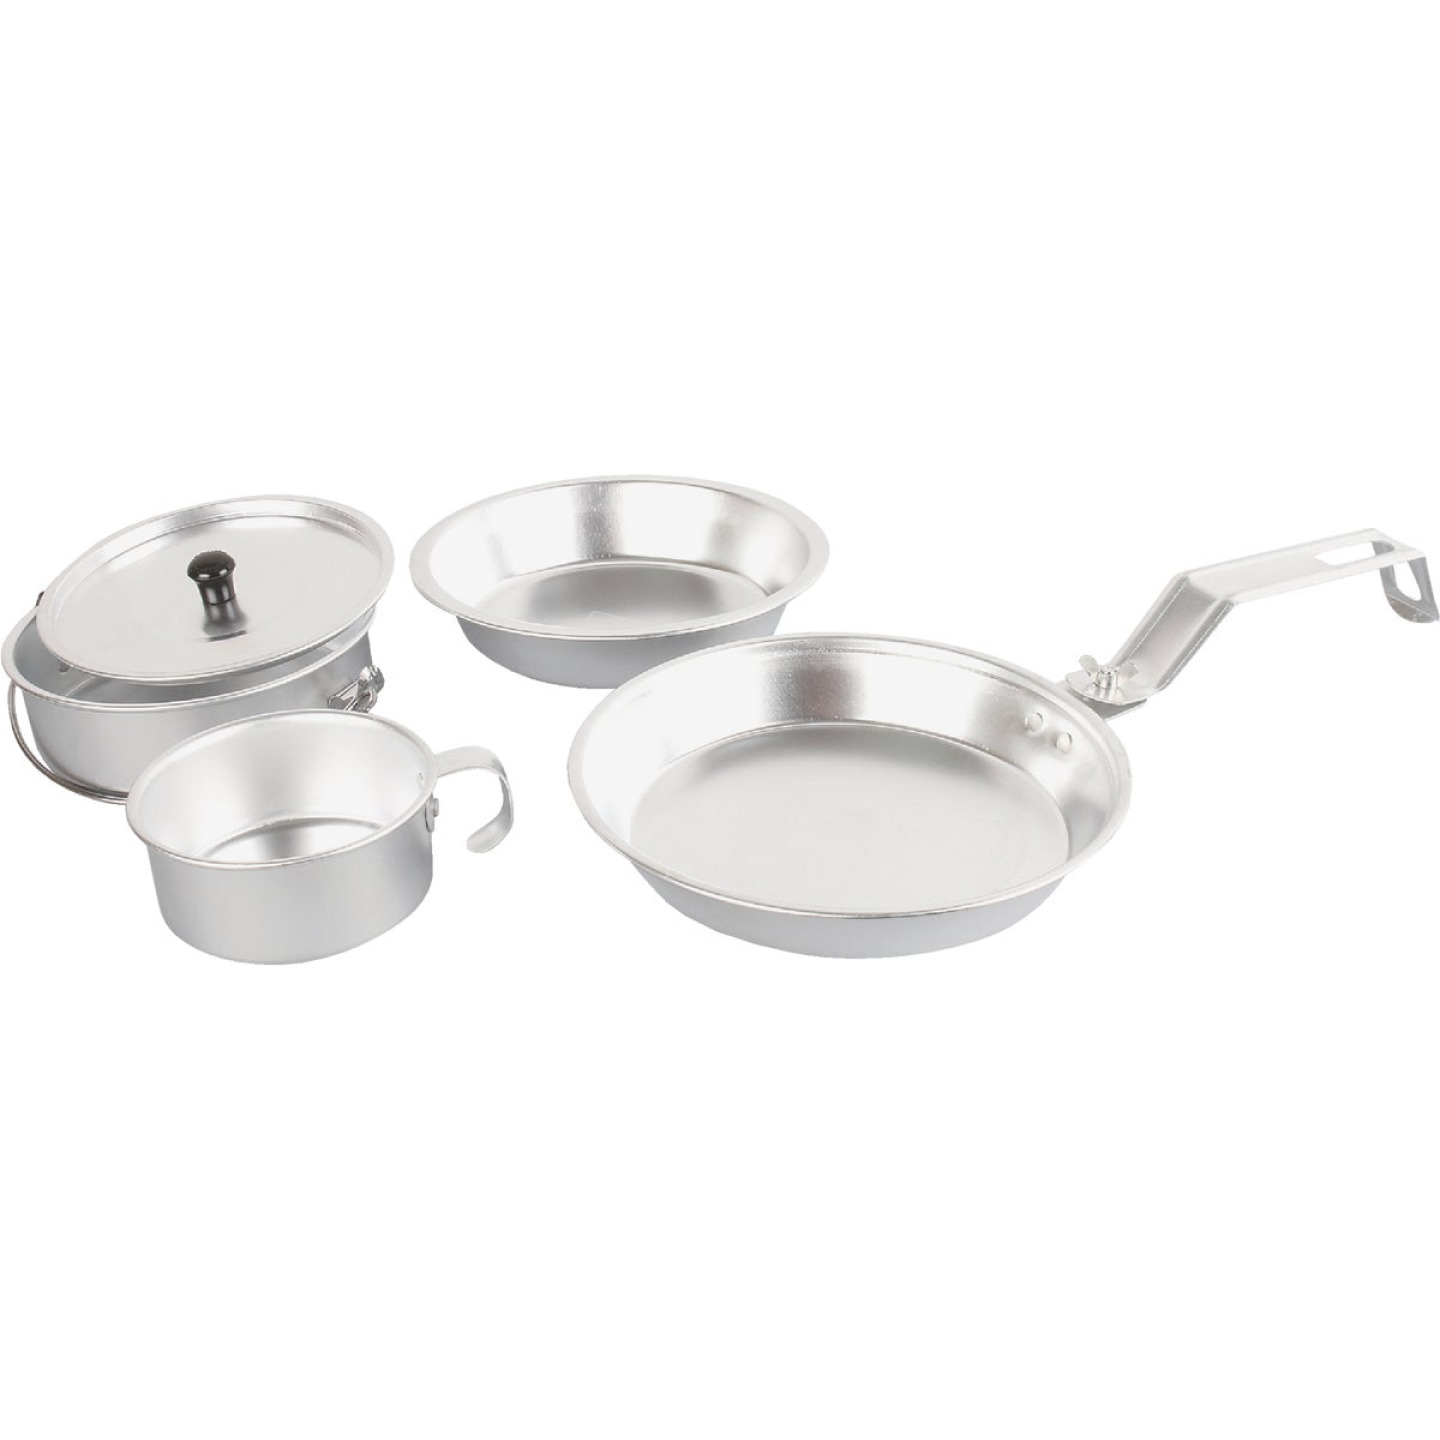 Coleman 5-Piece Aluminum Mess Kit with Cover Image 1